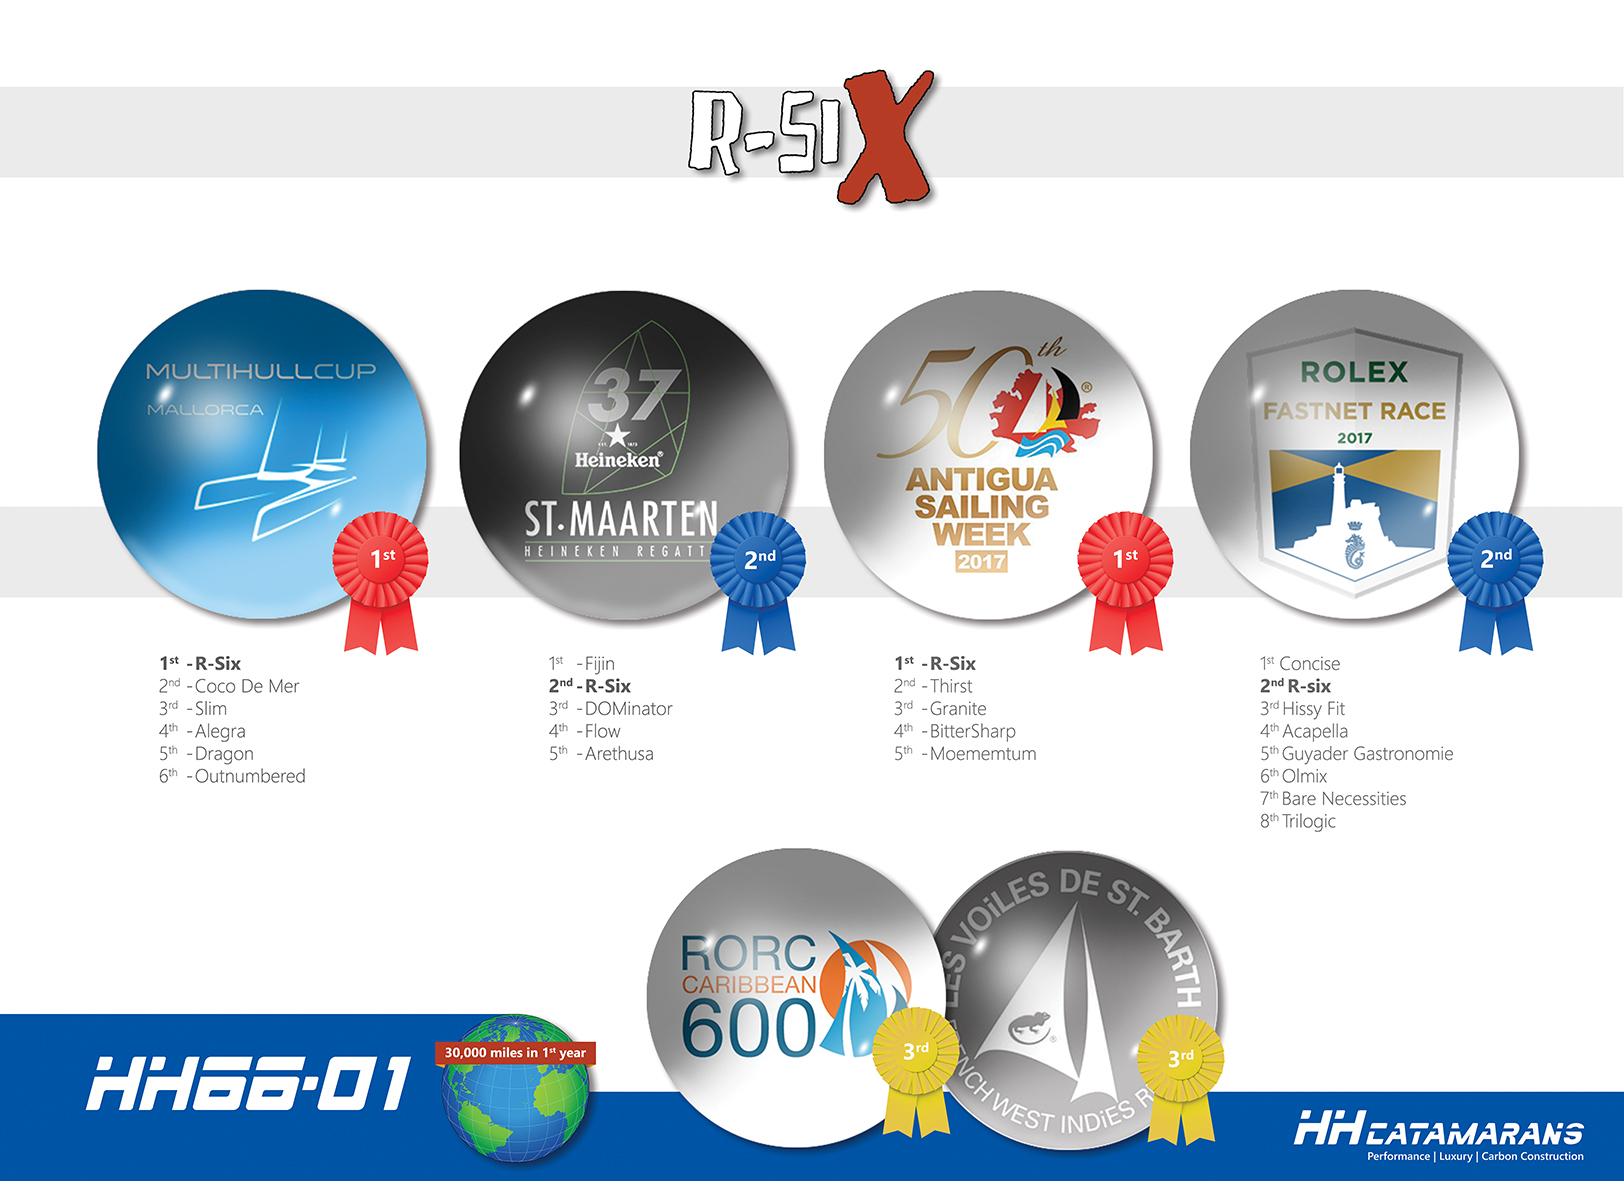 R-Six has had a busy first year, not to mention a successful one!